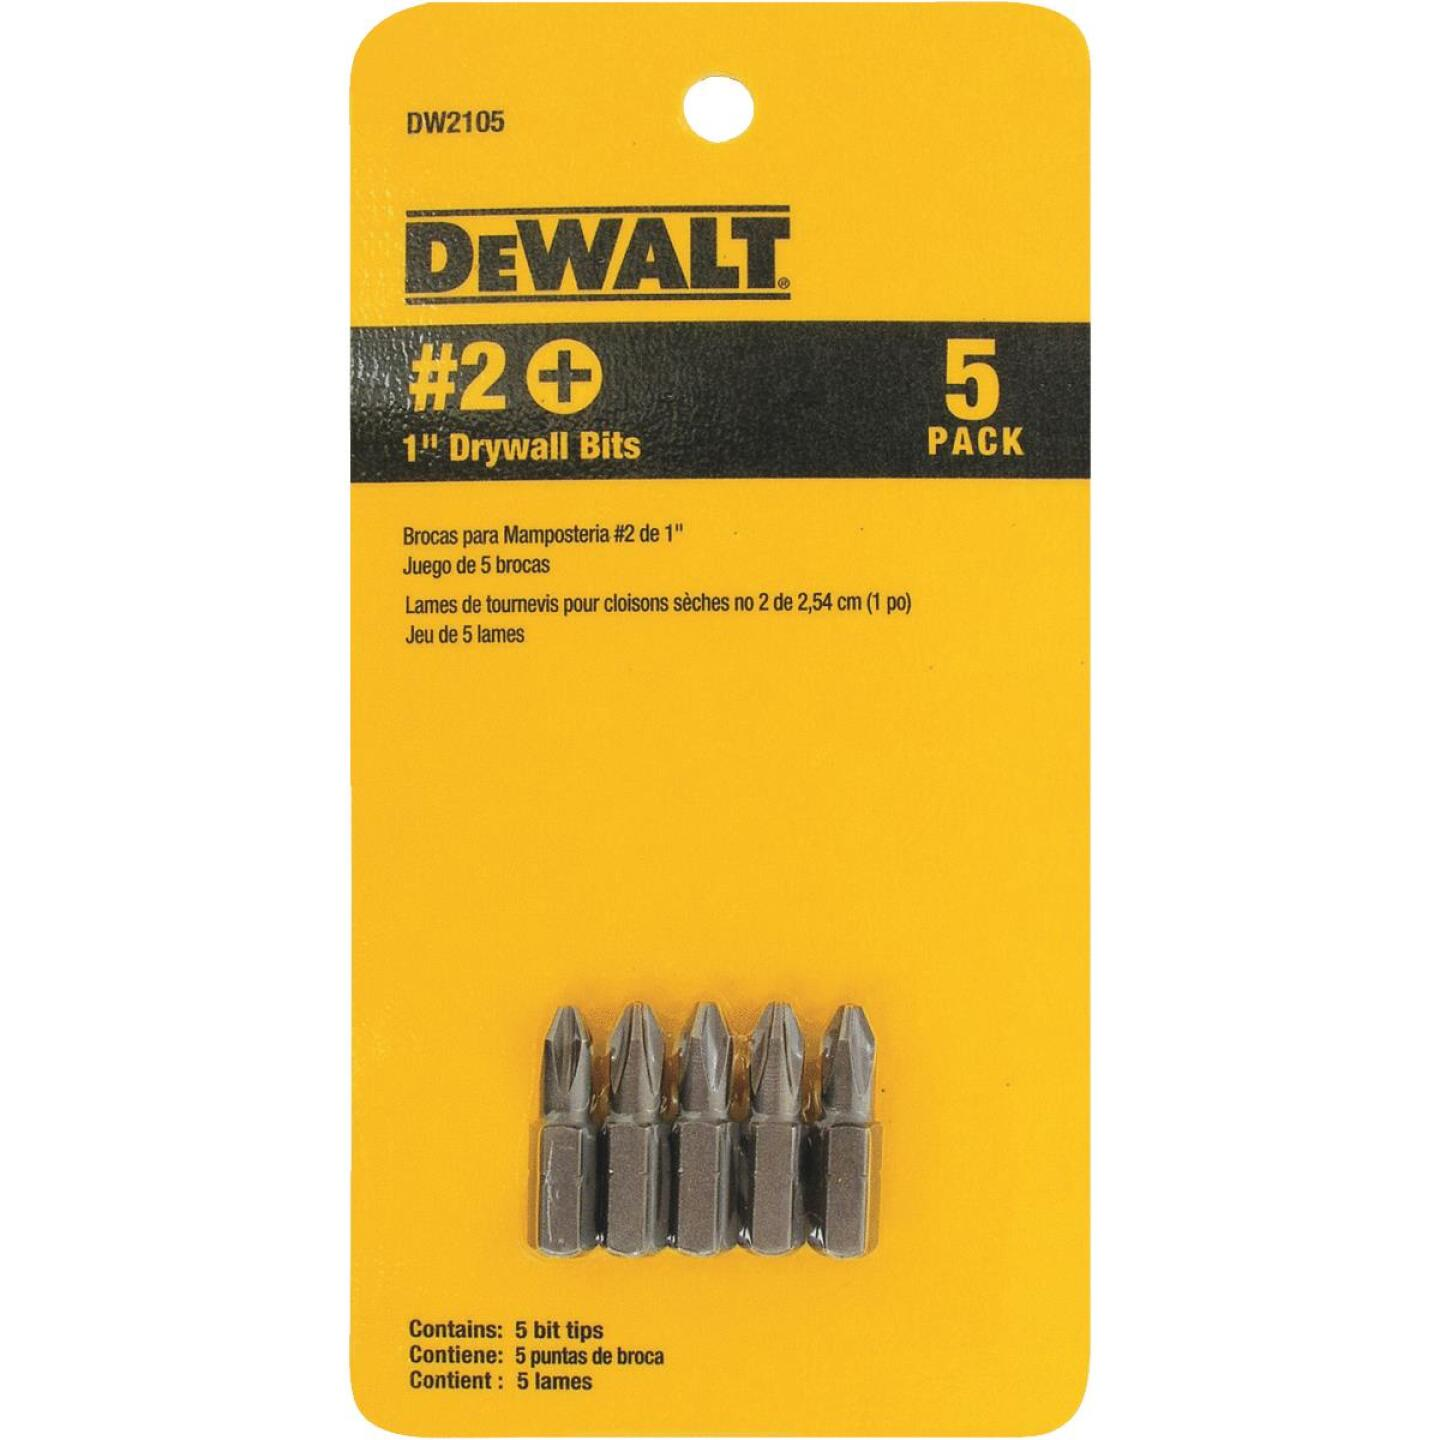 DeWalt Drywall Screwdriver Bit Set (5-Piece) Image 1